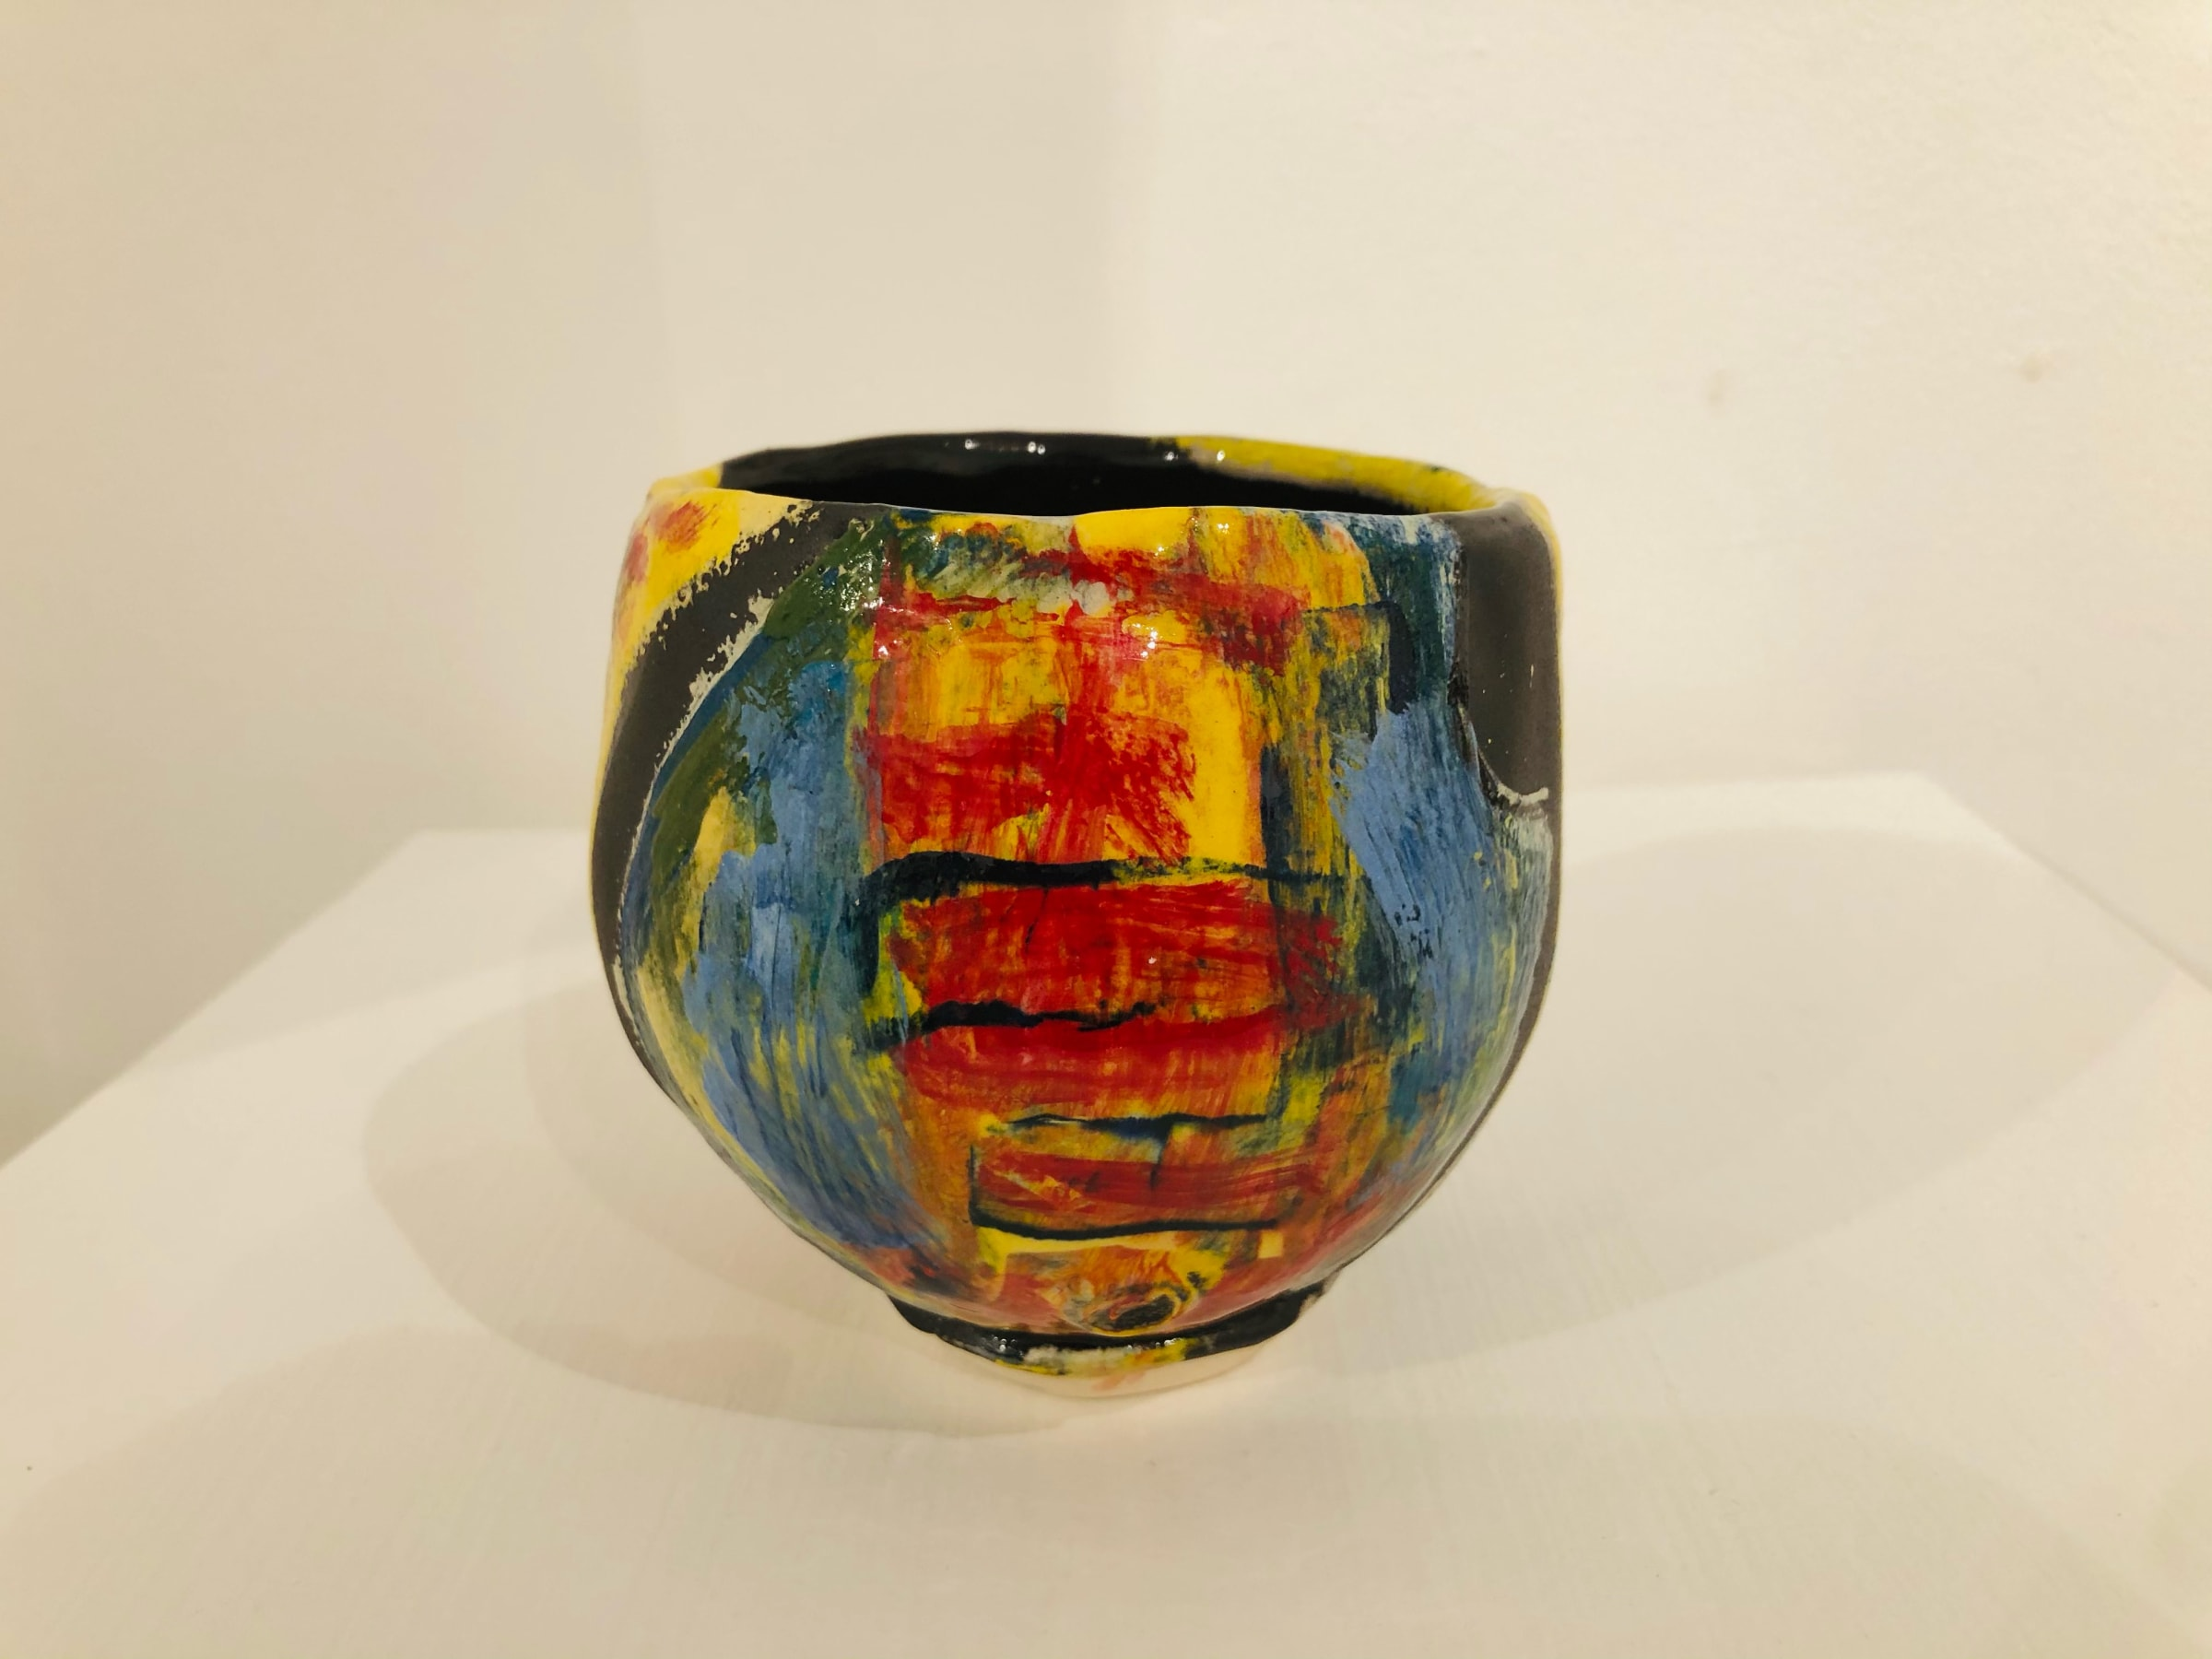 """<span class=""""link fancybox-details-link""""><a href=""""/artists/100-john-pollex/works/7420-john-pollex-tea-bowl-hand-built-2020/"""">View Detail Page</a></span><div class=""""artist""""><strong>John Pollex</strong></div> <div class=""""title""""><em>Tea bowl (hand built)</em>, 2020</div> <div class=""""signed_and_dated"""">impressed with the artist's seal mark 'JP'</div> <div class=""""medium"""">white earthenware decorated with coloured slips</div> <div class=""""dimensions"""">height. 9 cm x diameter. 10 cm</div><div class=""""copyright_line"""">Copyright The Artist</div>"""